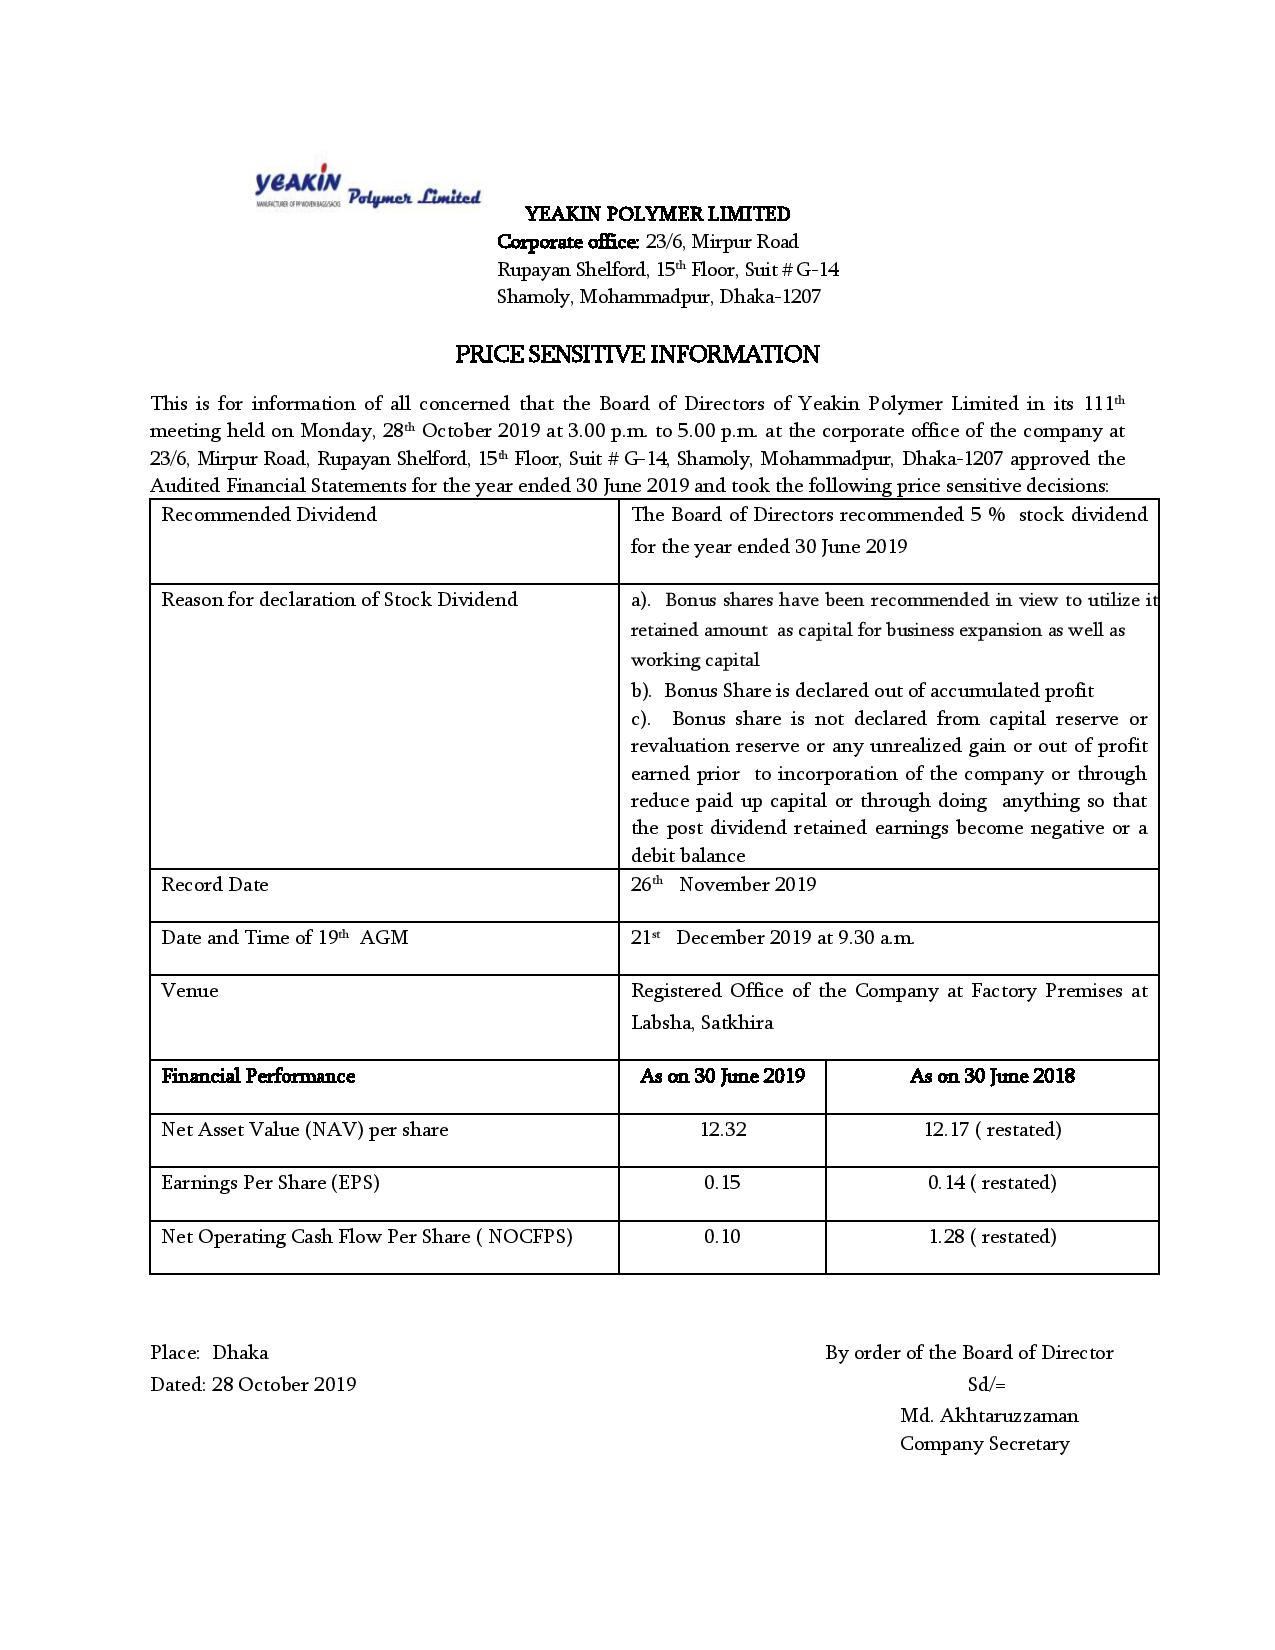 Price Sensitive Information 28.10.2019-page-001